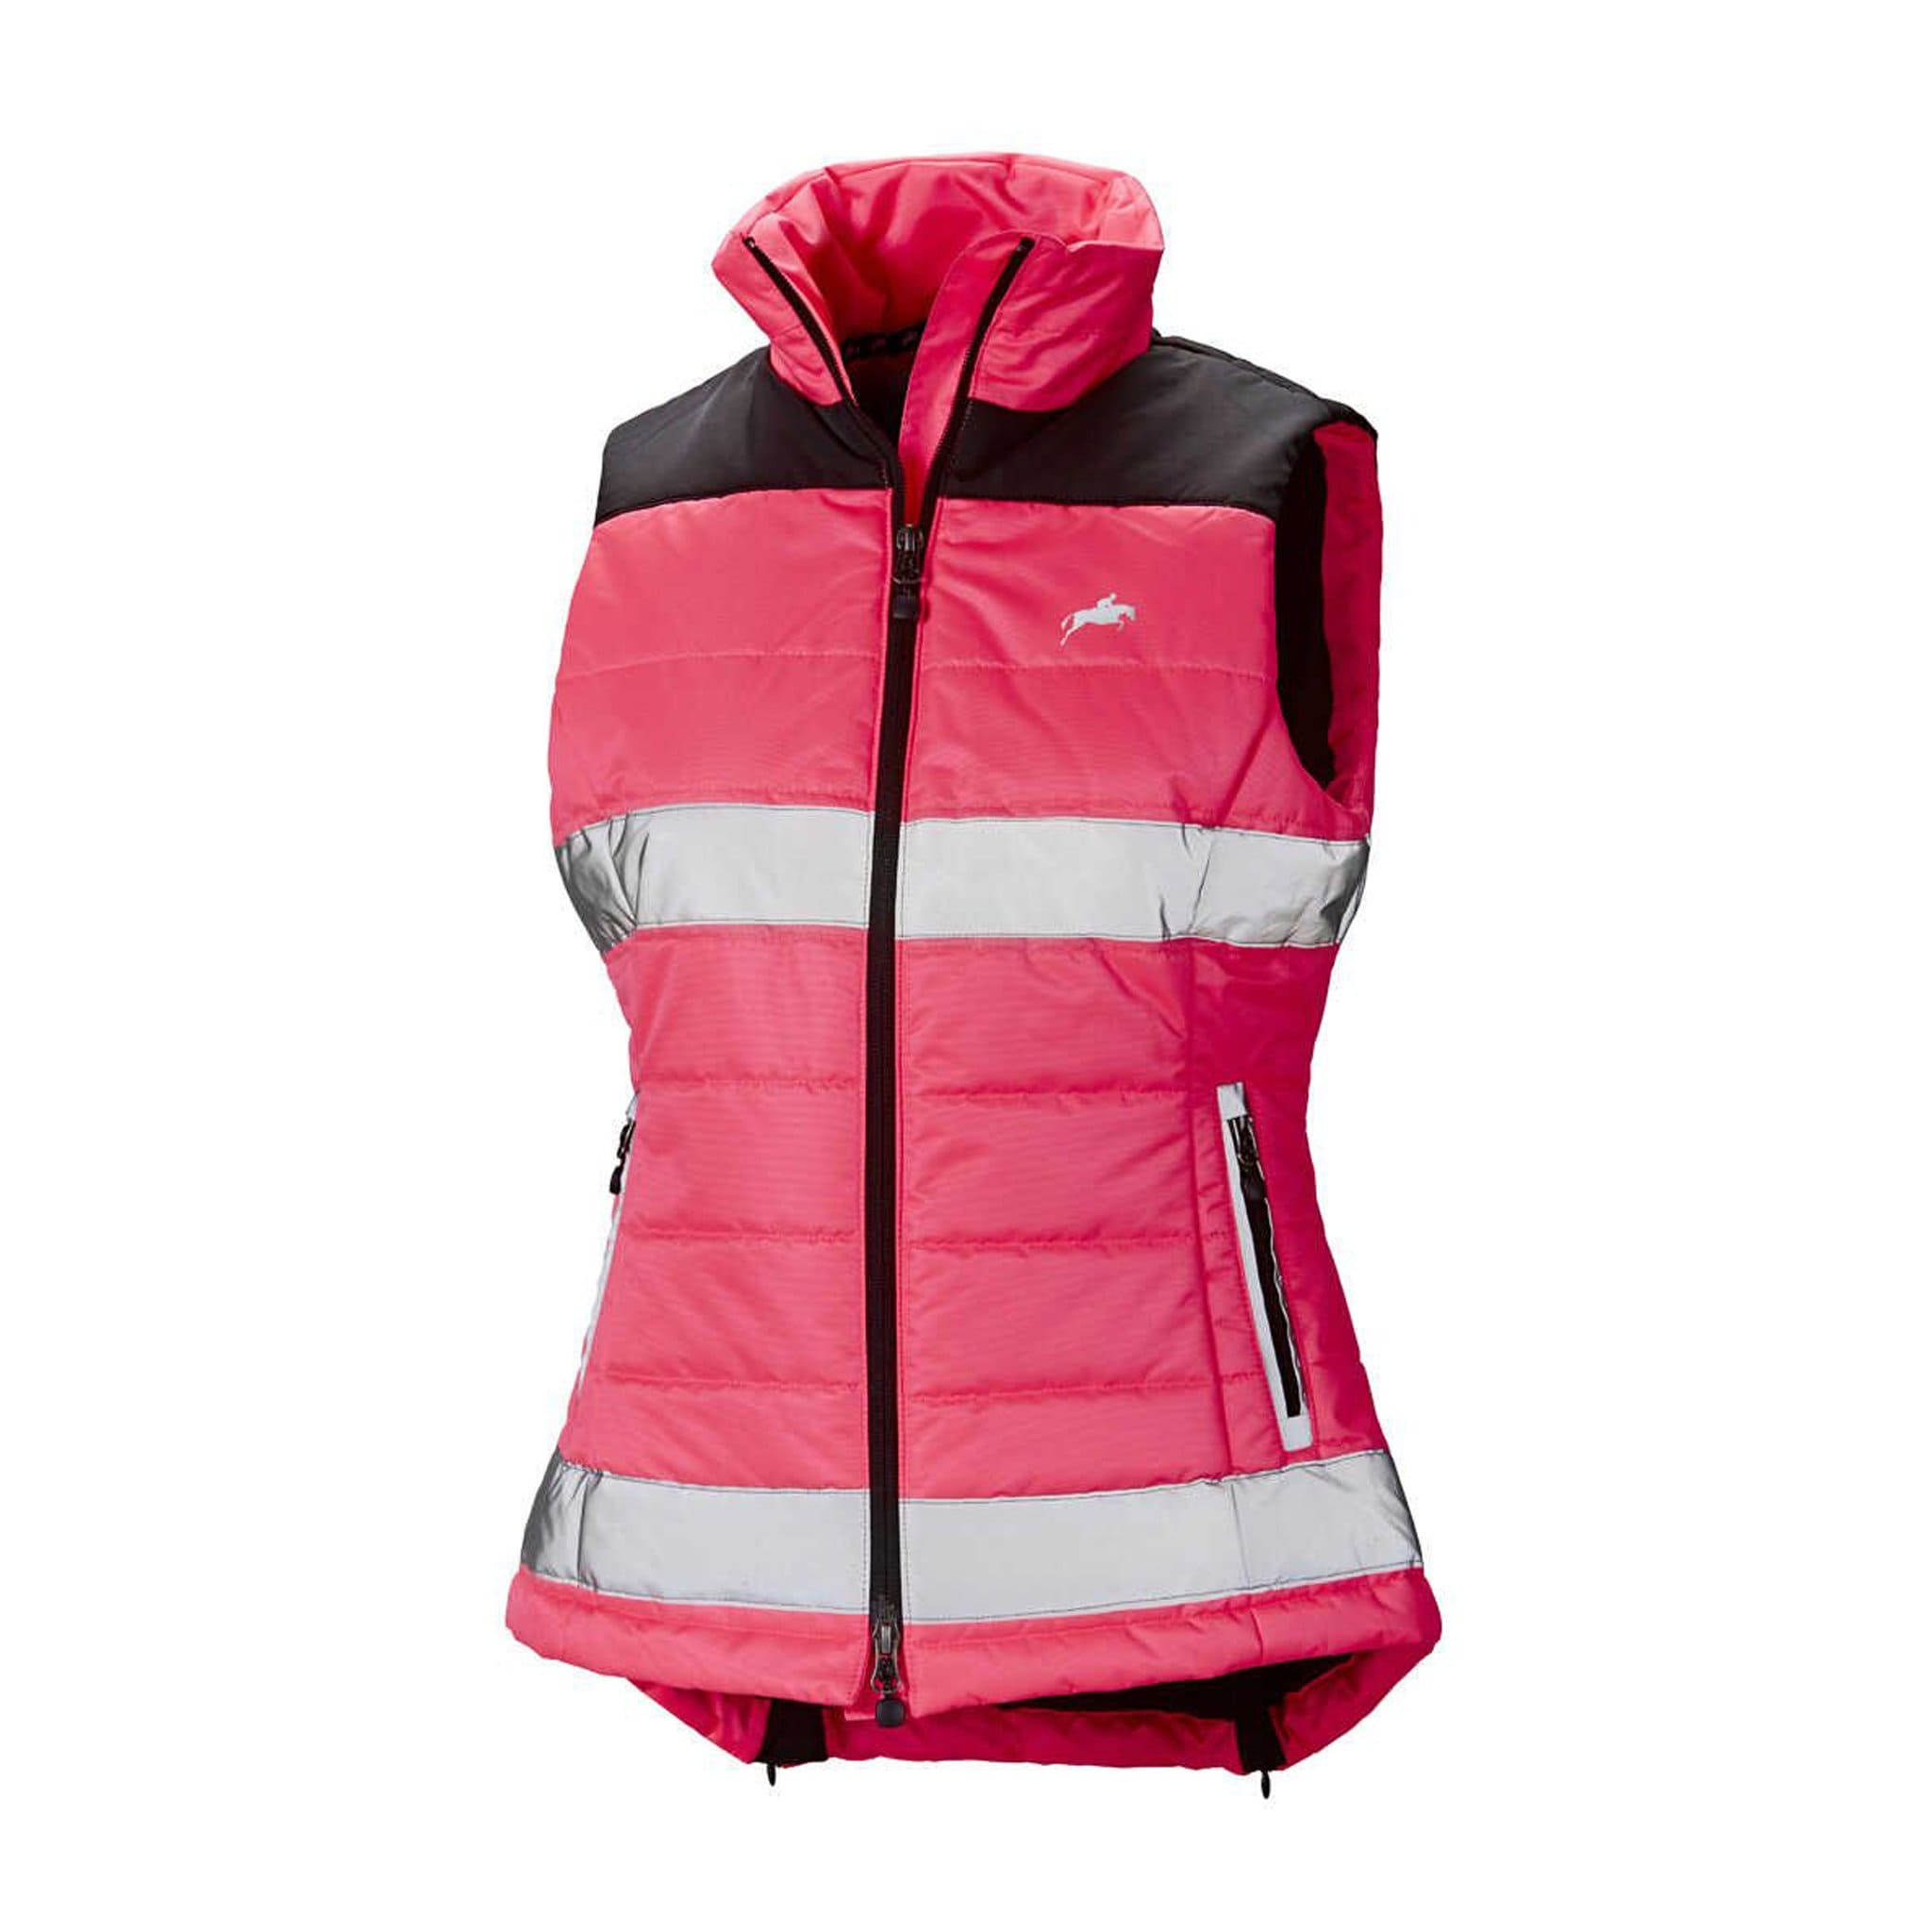 Harry Hall Hi Viz Women's Gilet Pink Front View HHL1880